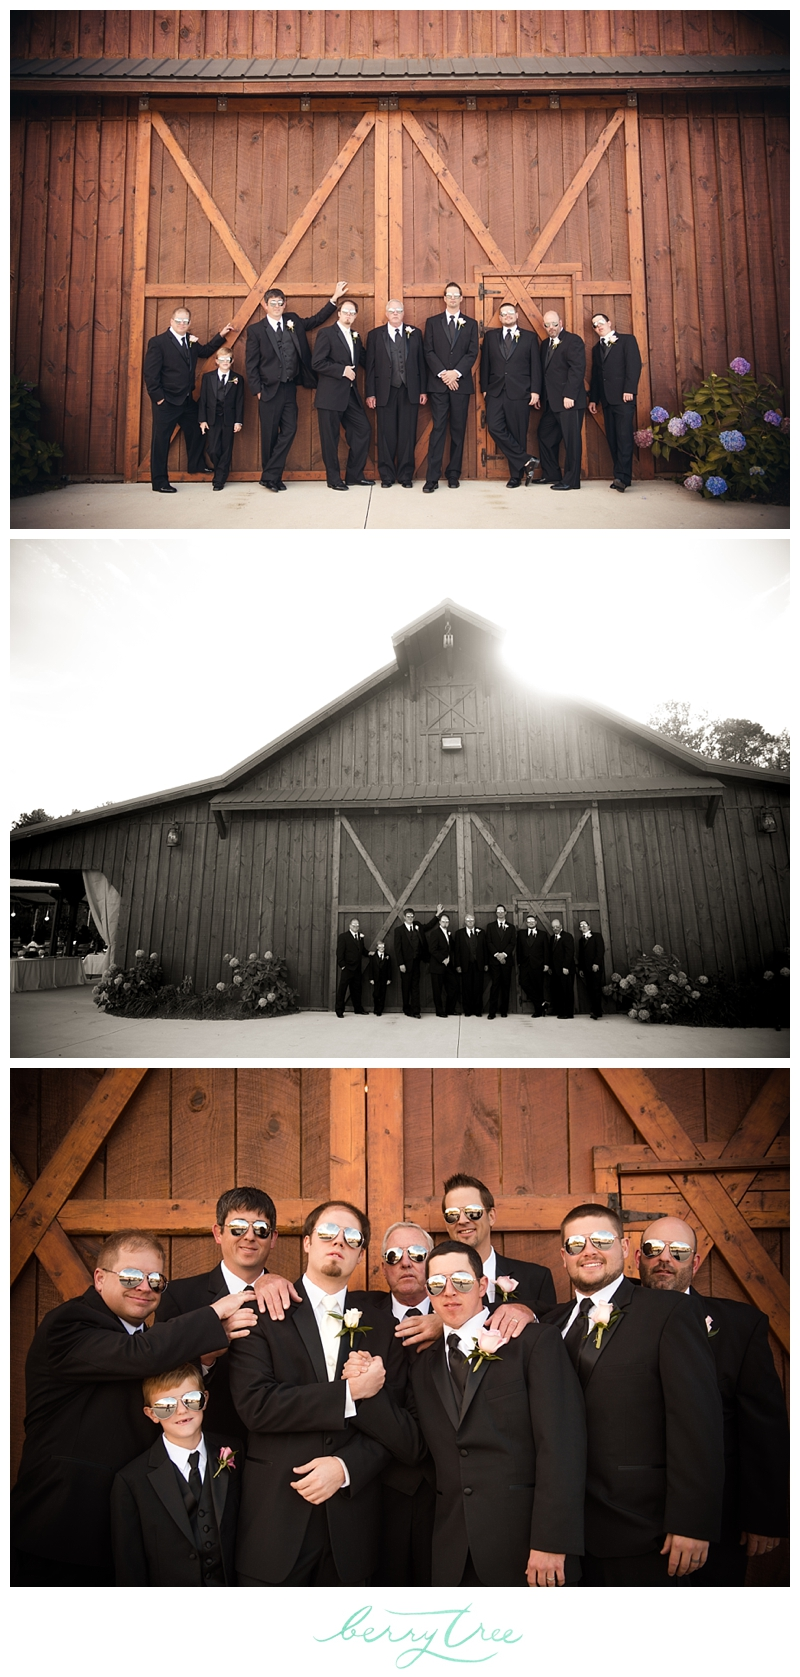 2013 11 21 0063 Jeremy & Katy | The Reid Barn | Cumming, GA | BerryTree Photography